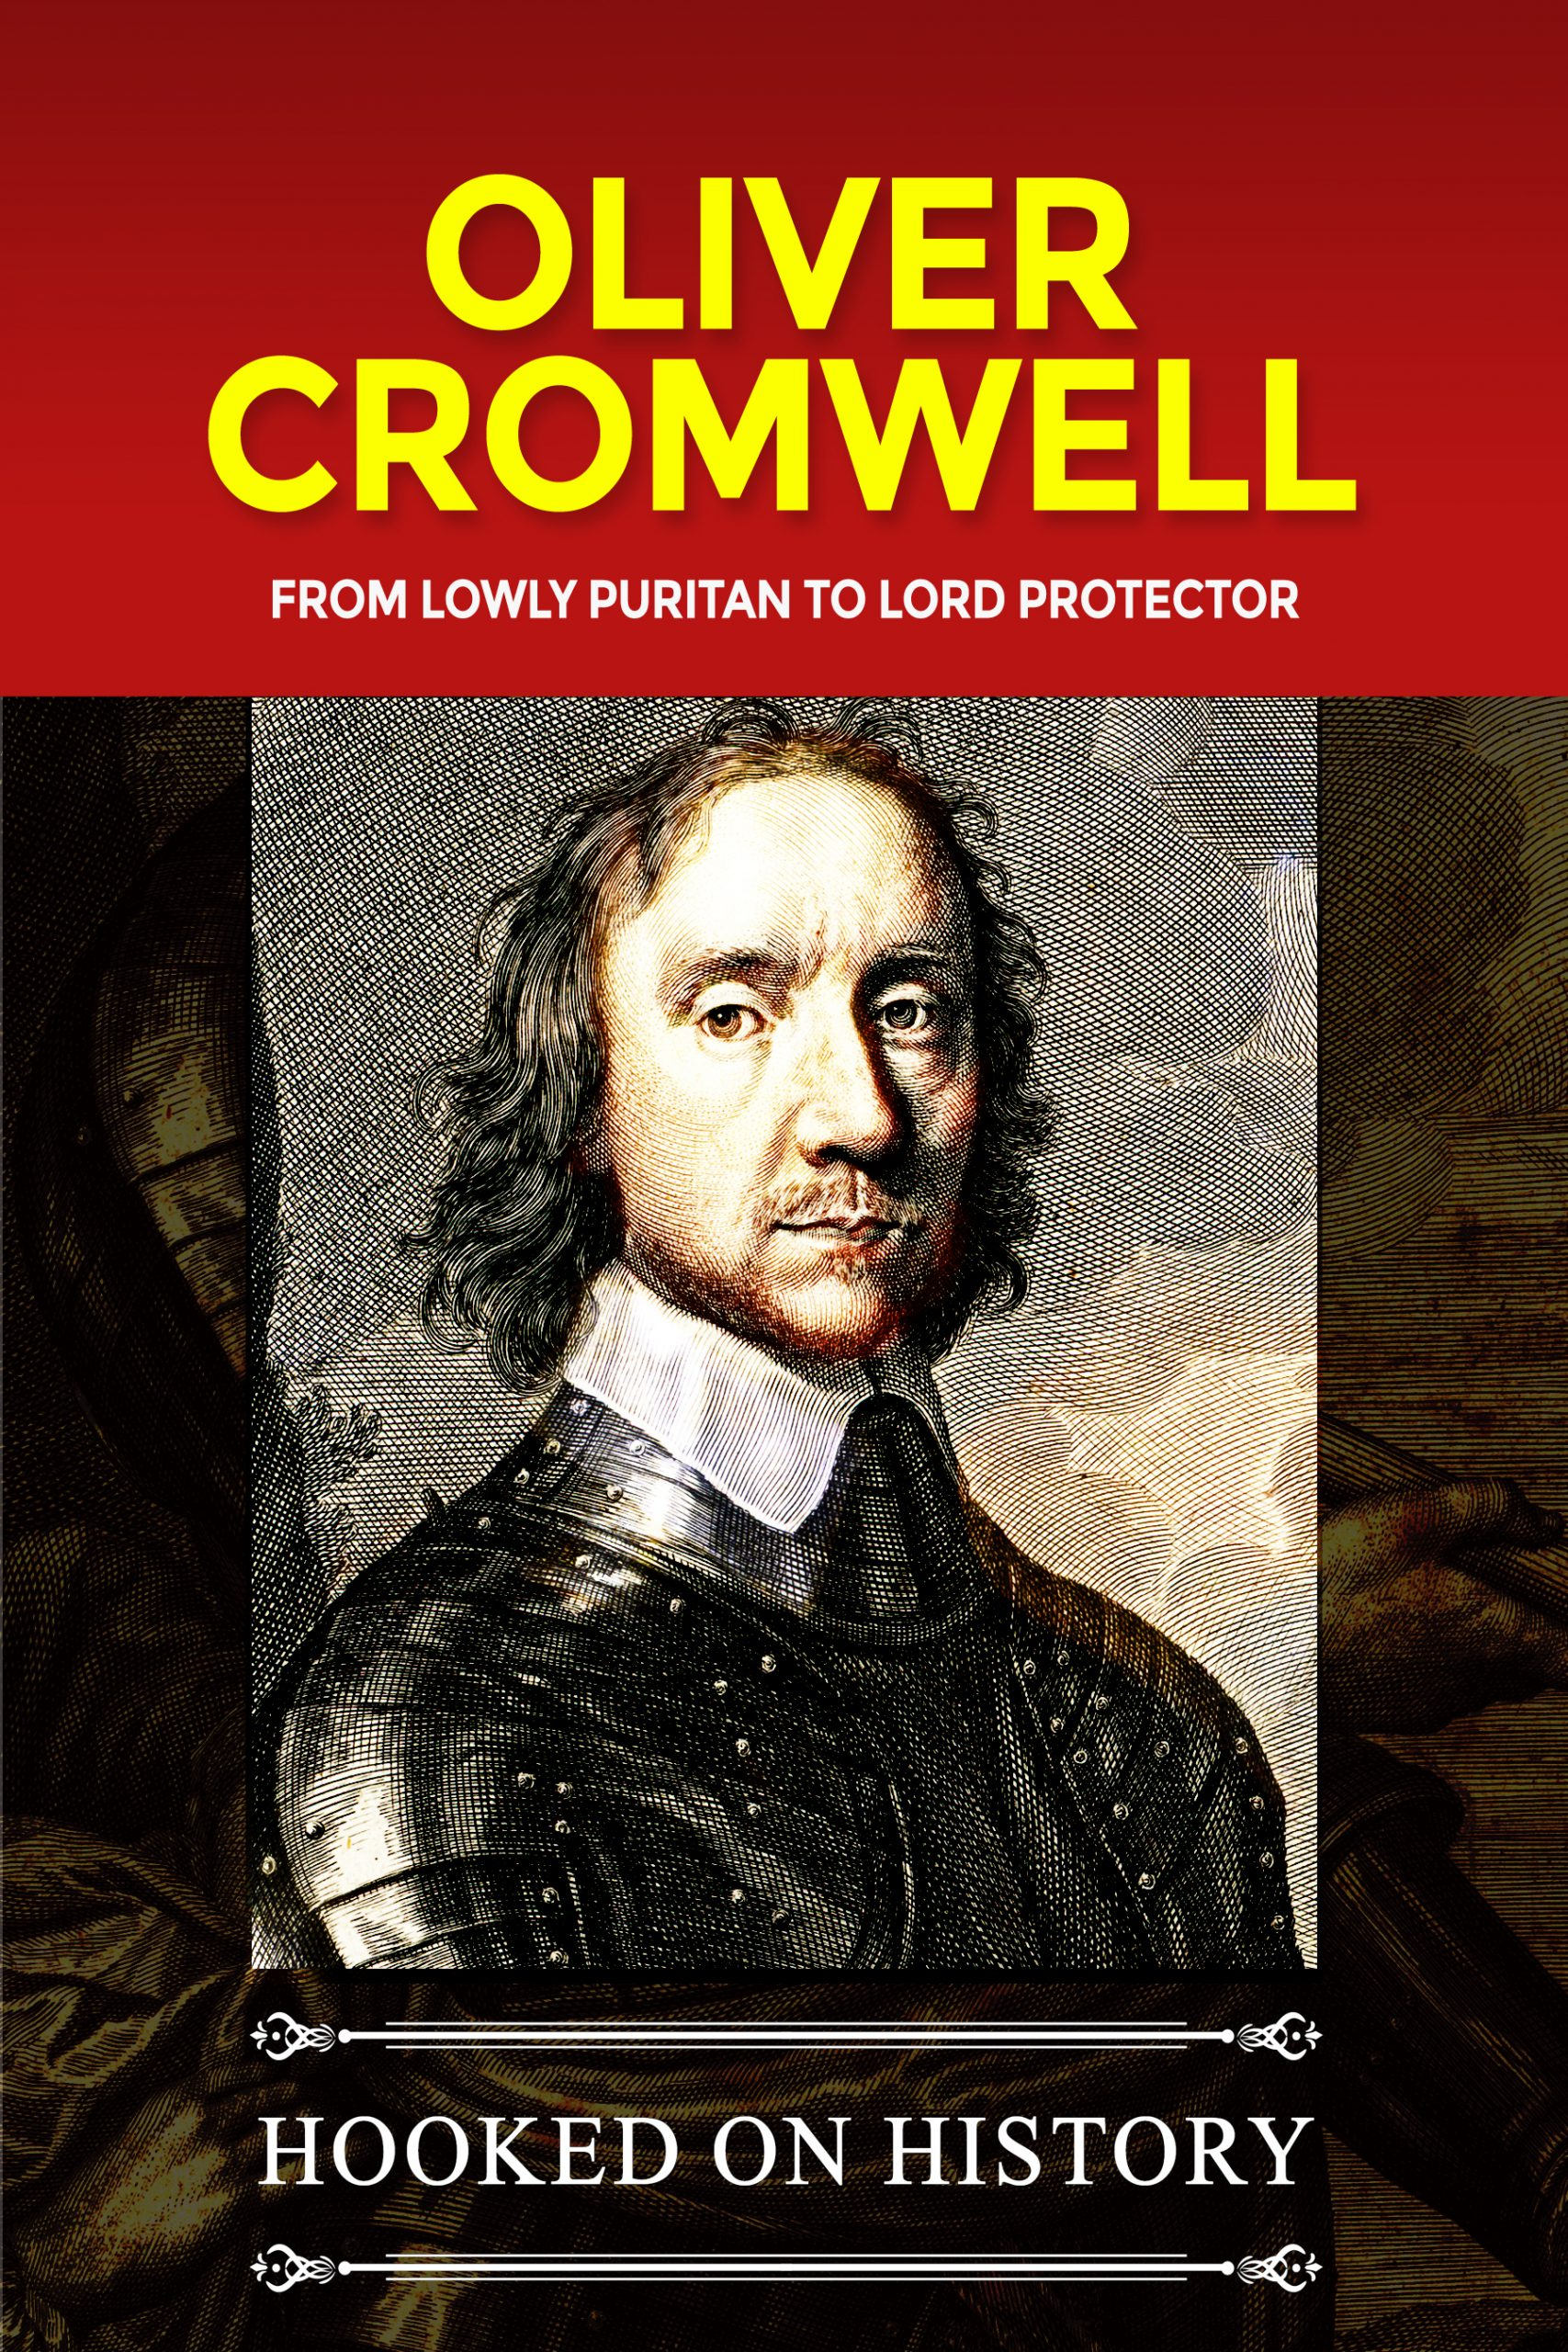 Oliver Cromwell Biograpphy Short Read